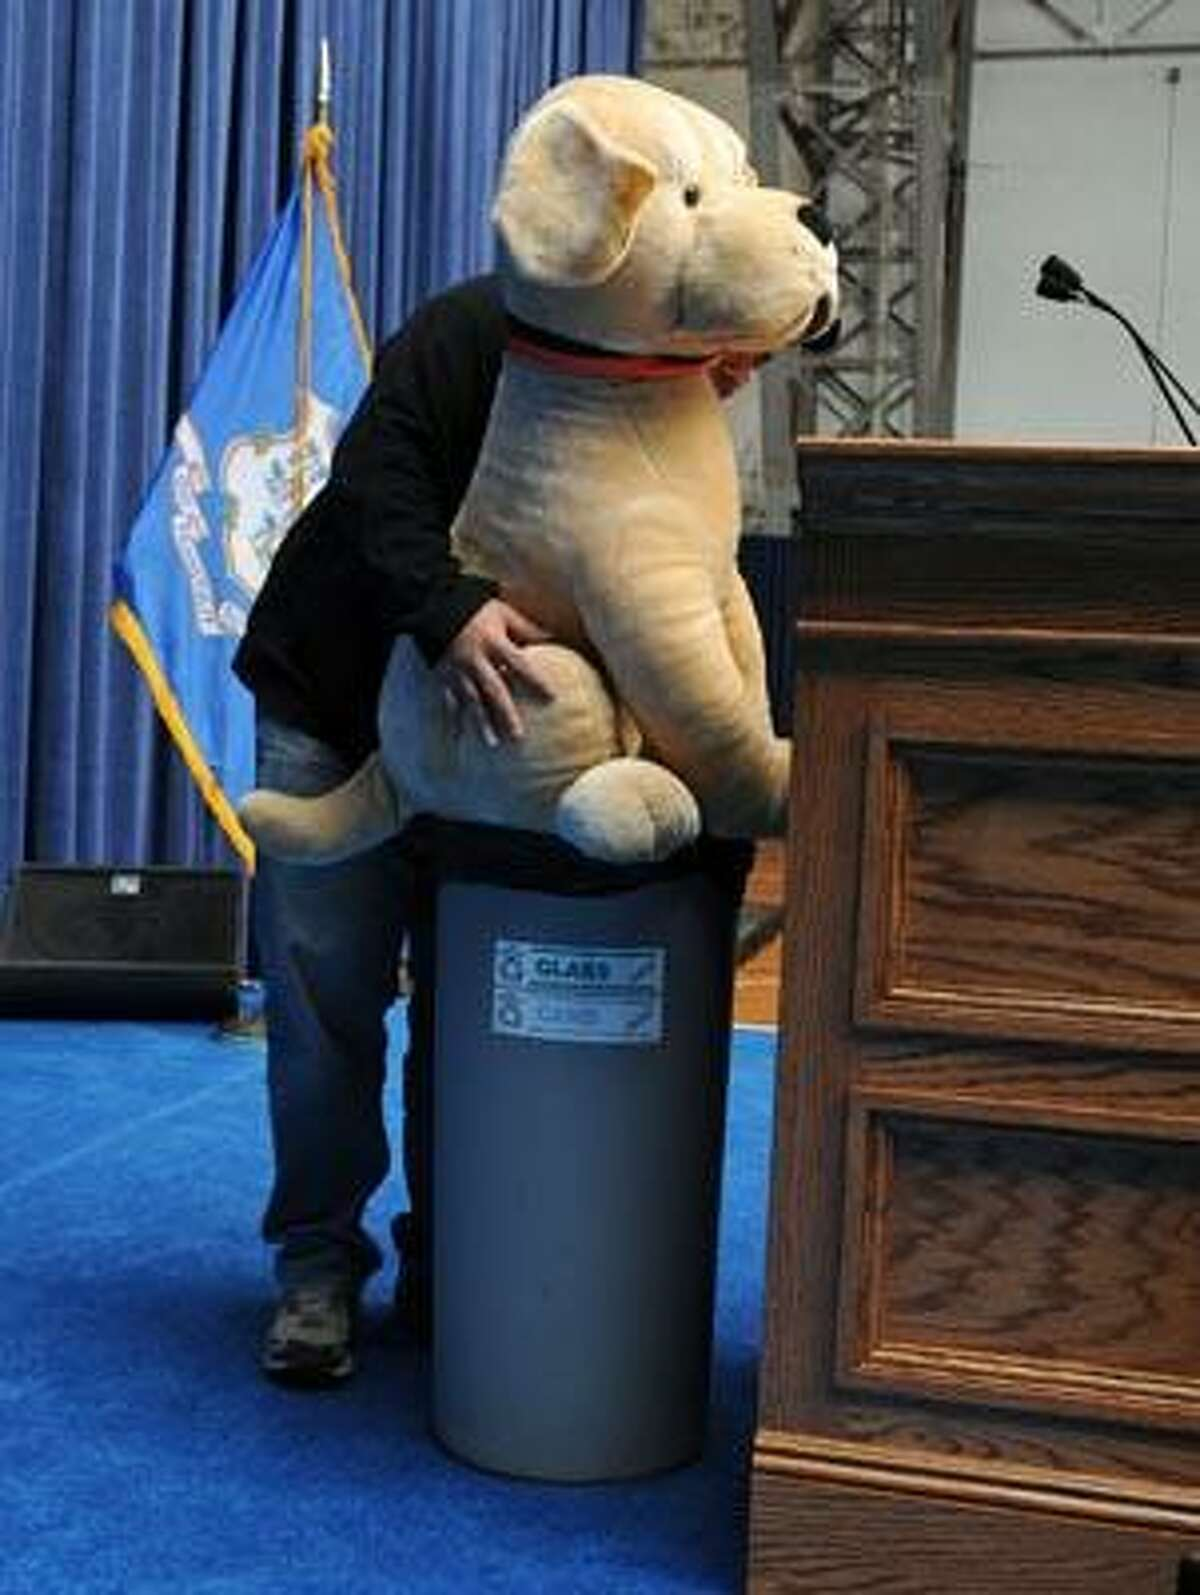 Hartford--A stuffed toy dog serves as a stand-in at the podium during Tuesday's preparation for Wednesday's State of Connecticut Gubernatorial Inauguration at the Connecticut State Armory. Photo by Brad Horrigan/New Haven Register-01.04.11.